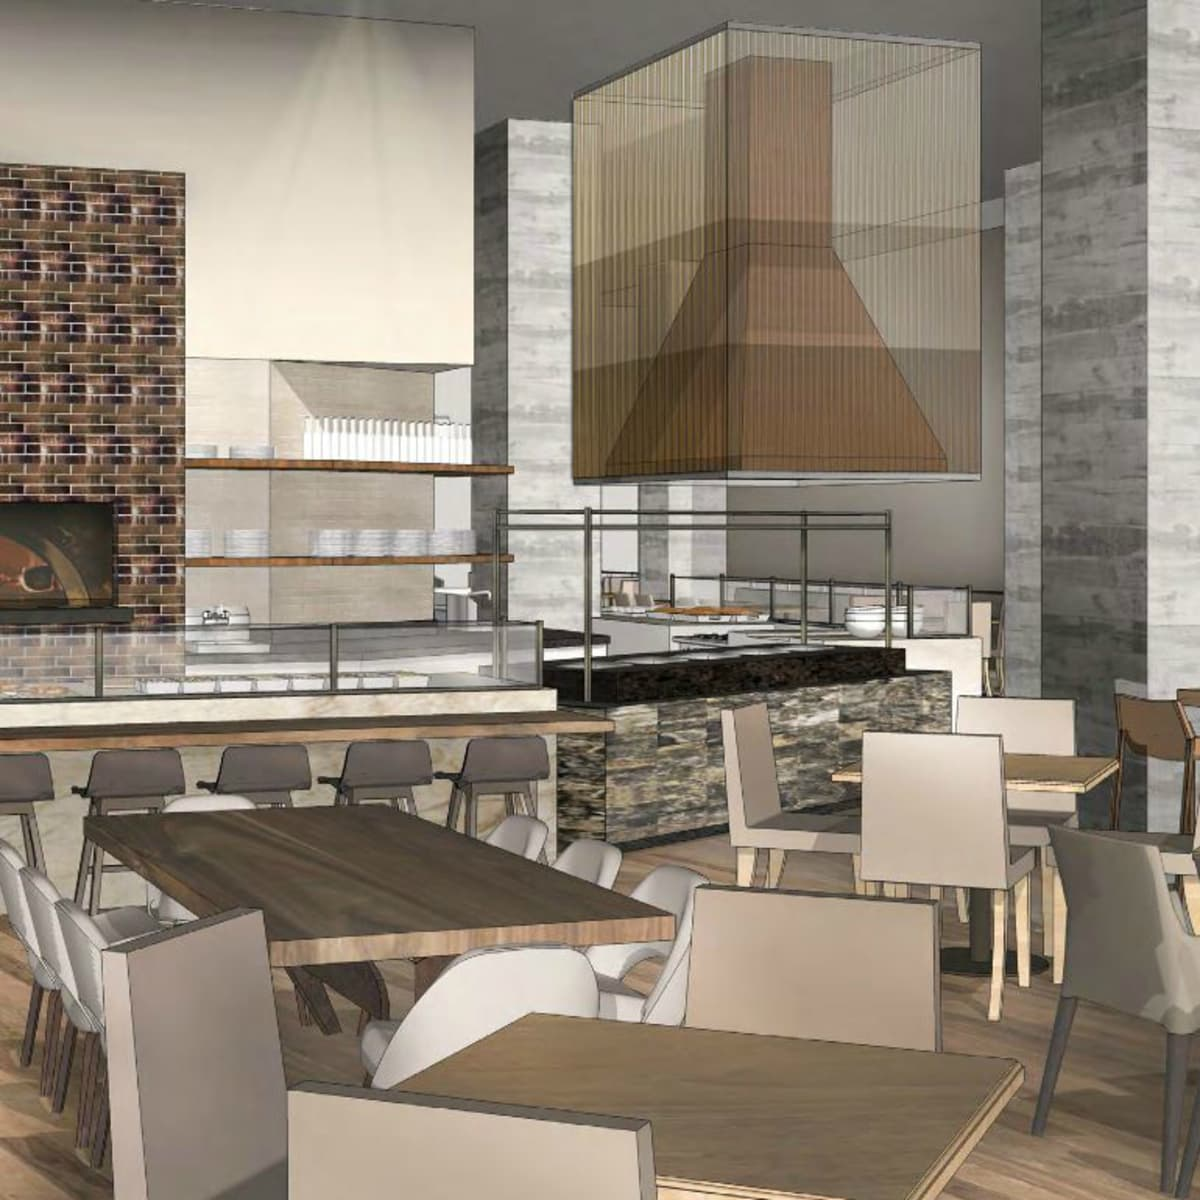 Hilton Austin downtown hotel 2016 renovation rendering restaurant Cannon + Belle kitchen